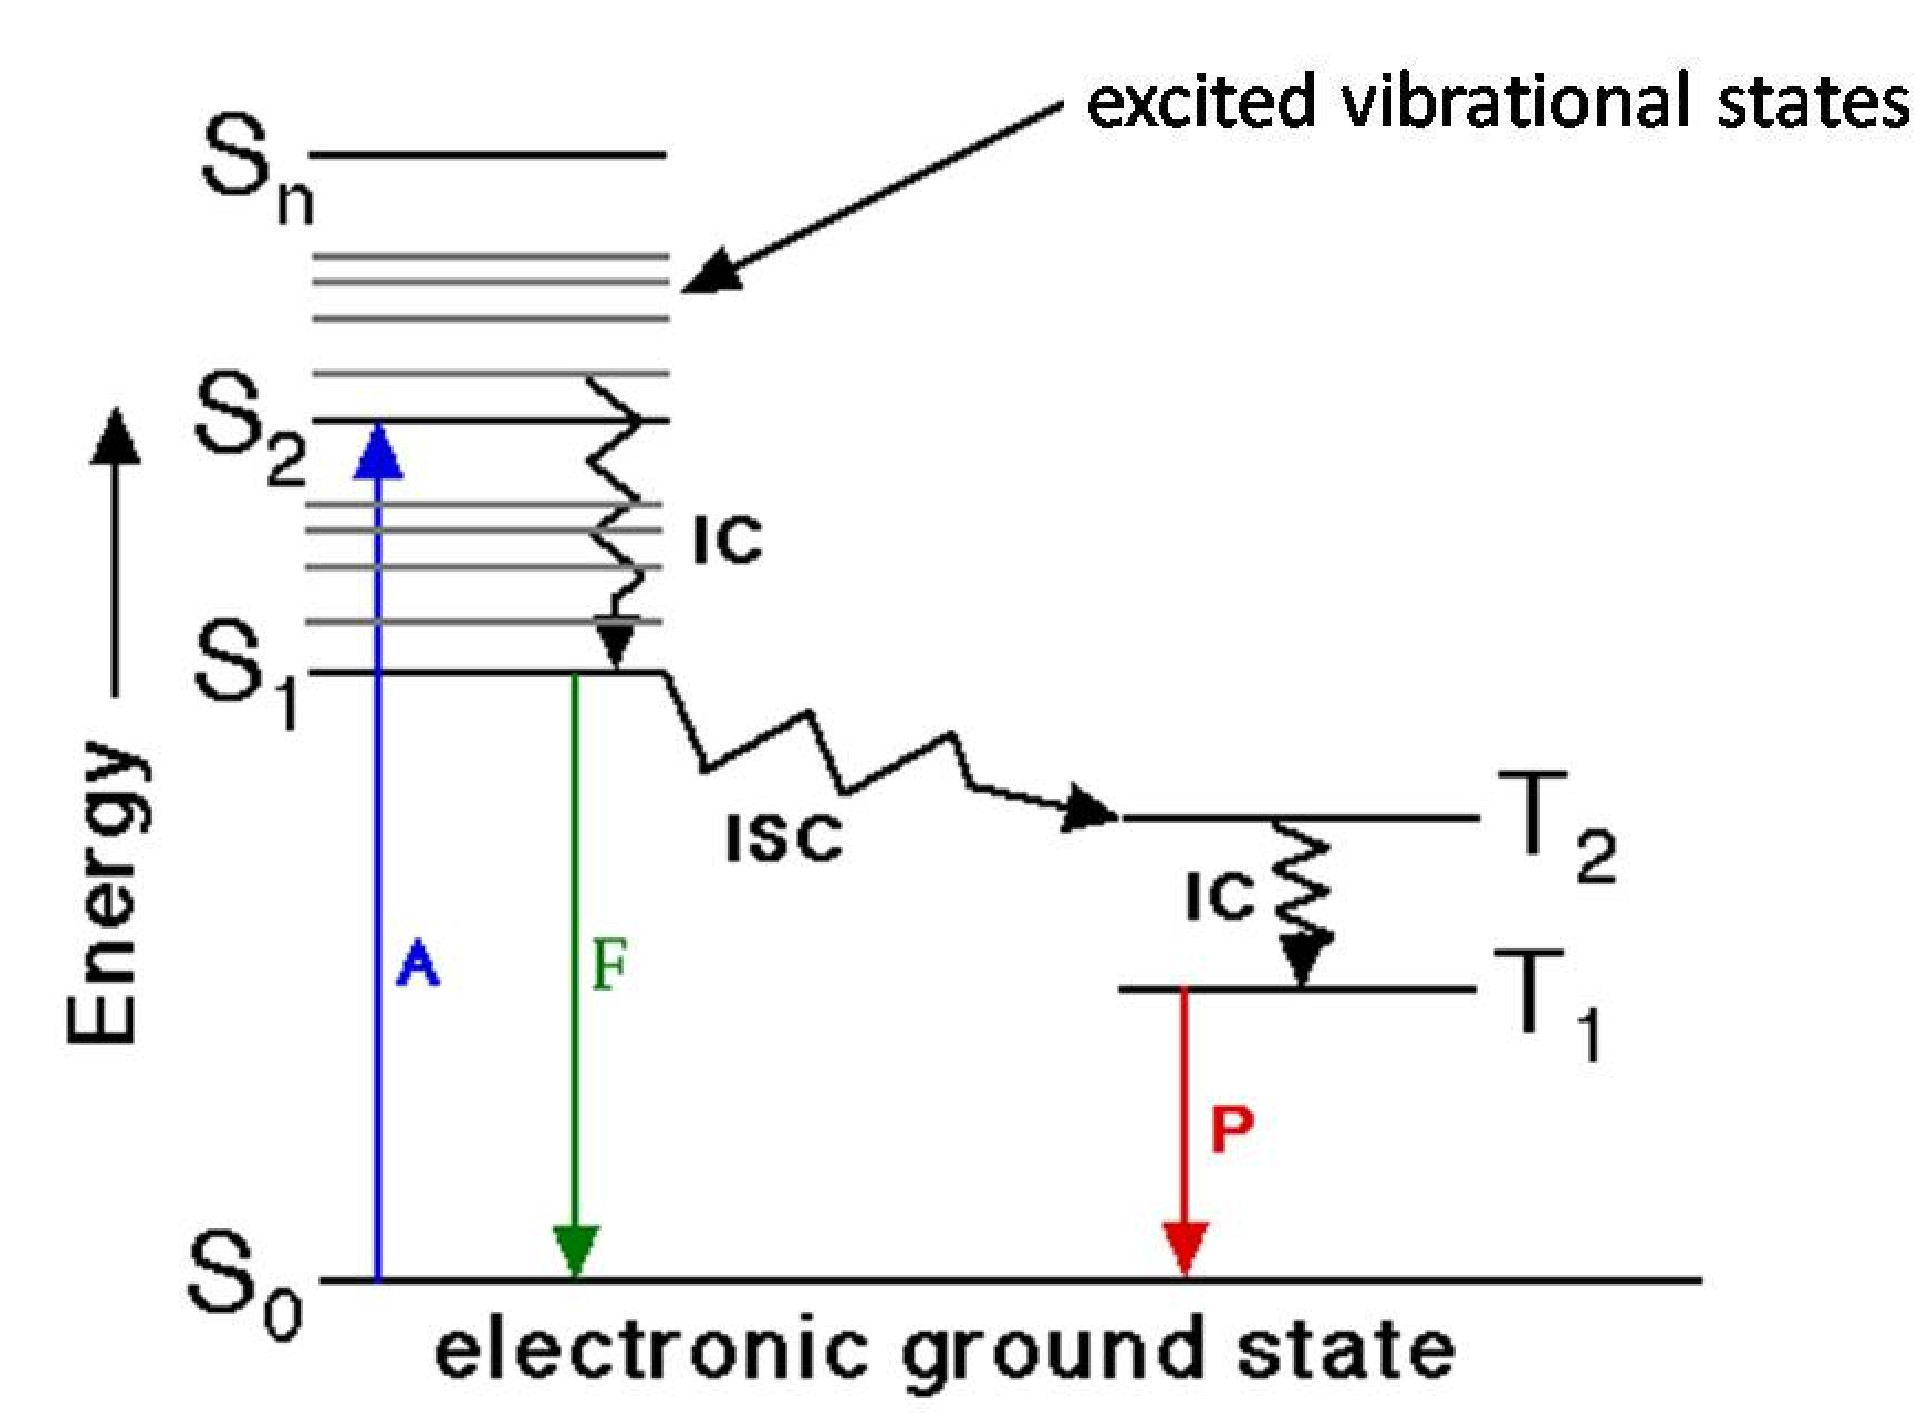 Fluorescence characterization and its application in dna detection jablonski diagram where a absorbance f fluorescence p phosphorescence s single state t triplet state ic internal conversion ccuart Choice Image